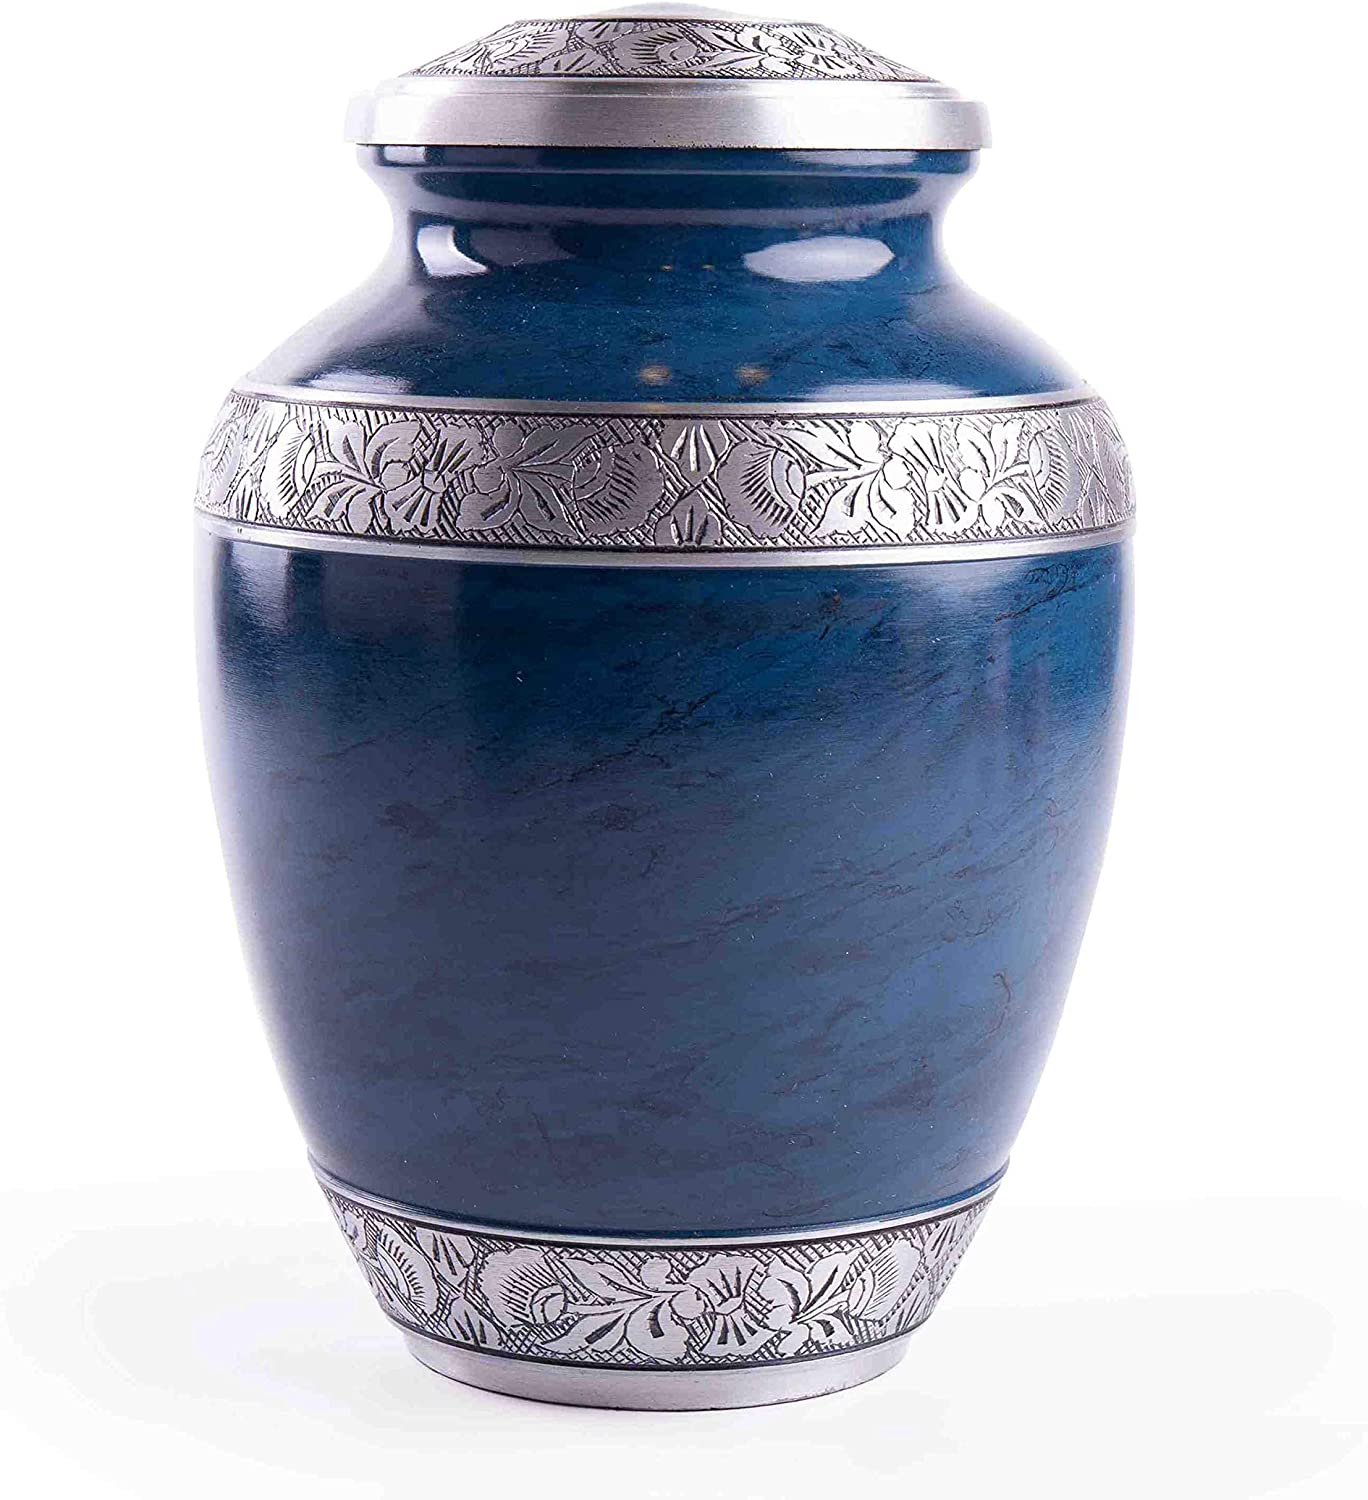 Aluminum - 10 Inch Height x 7 Inch Width Large Handcrafted Funeral Memorial with Striking Blue Design GSM Brands Cremation Urn for Adult Human Ashes